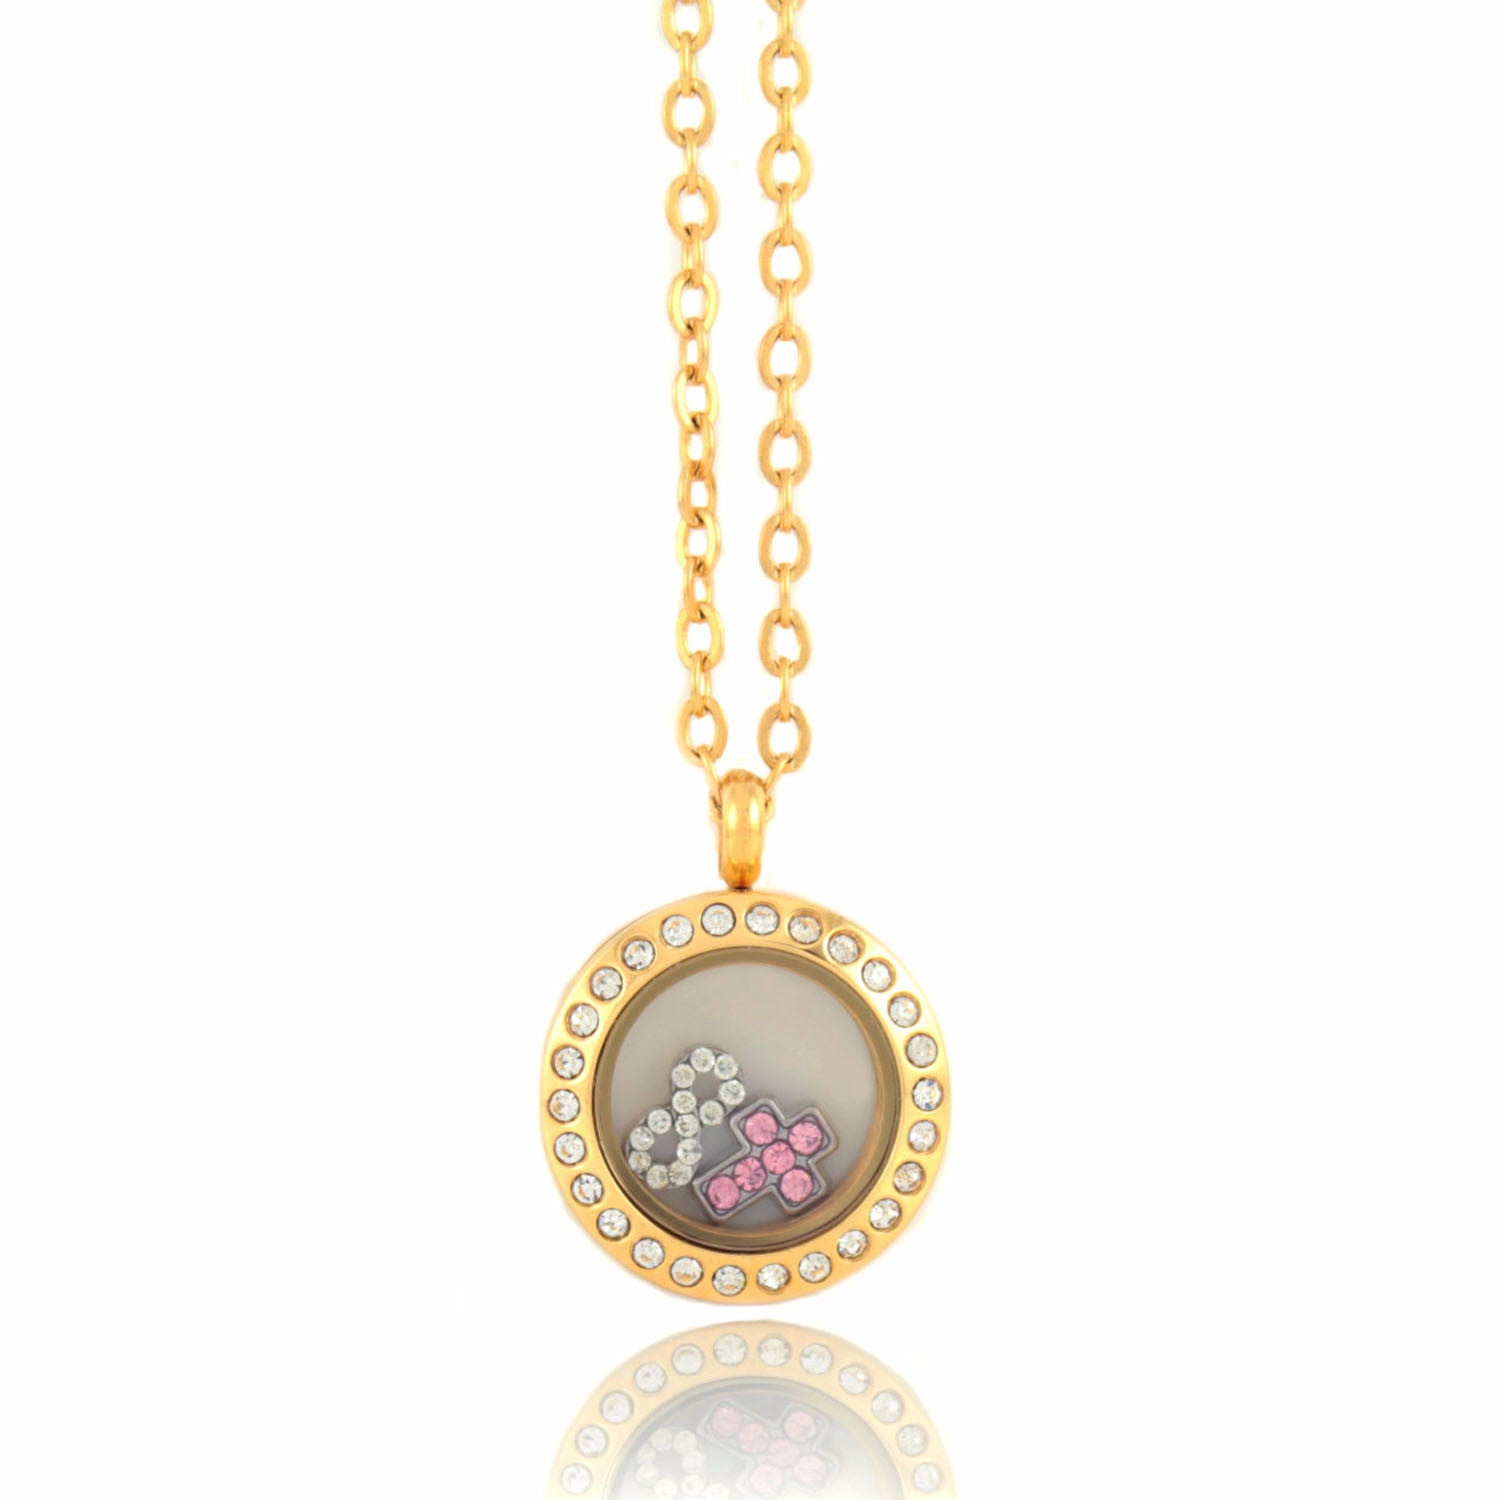 Stainless Steel Floating Locket Necklace with 4 Charms (Mini Gold Rhinestone)